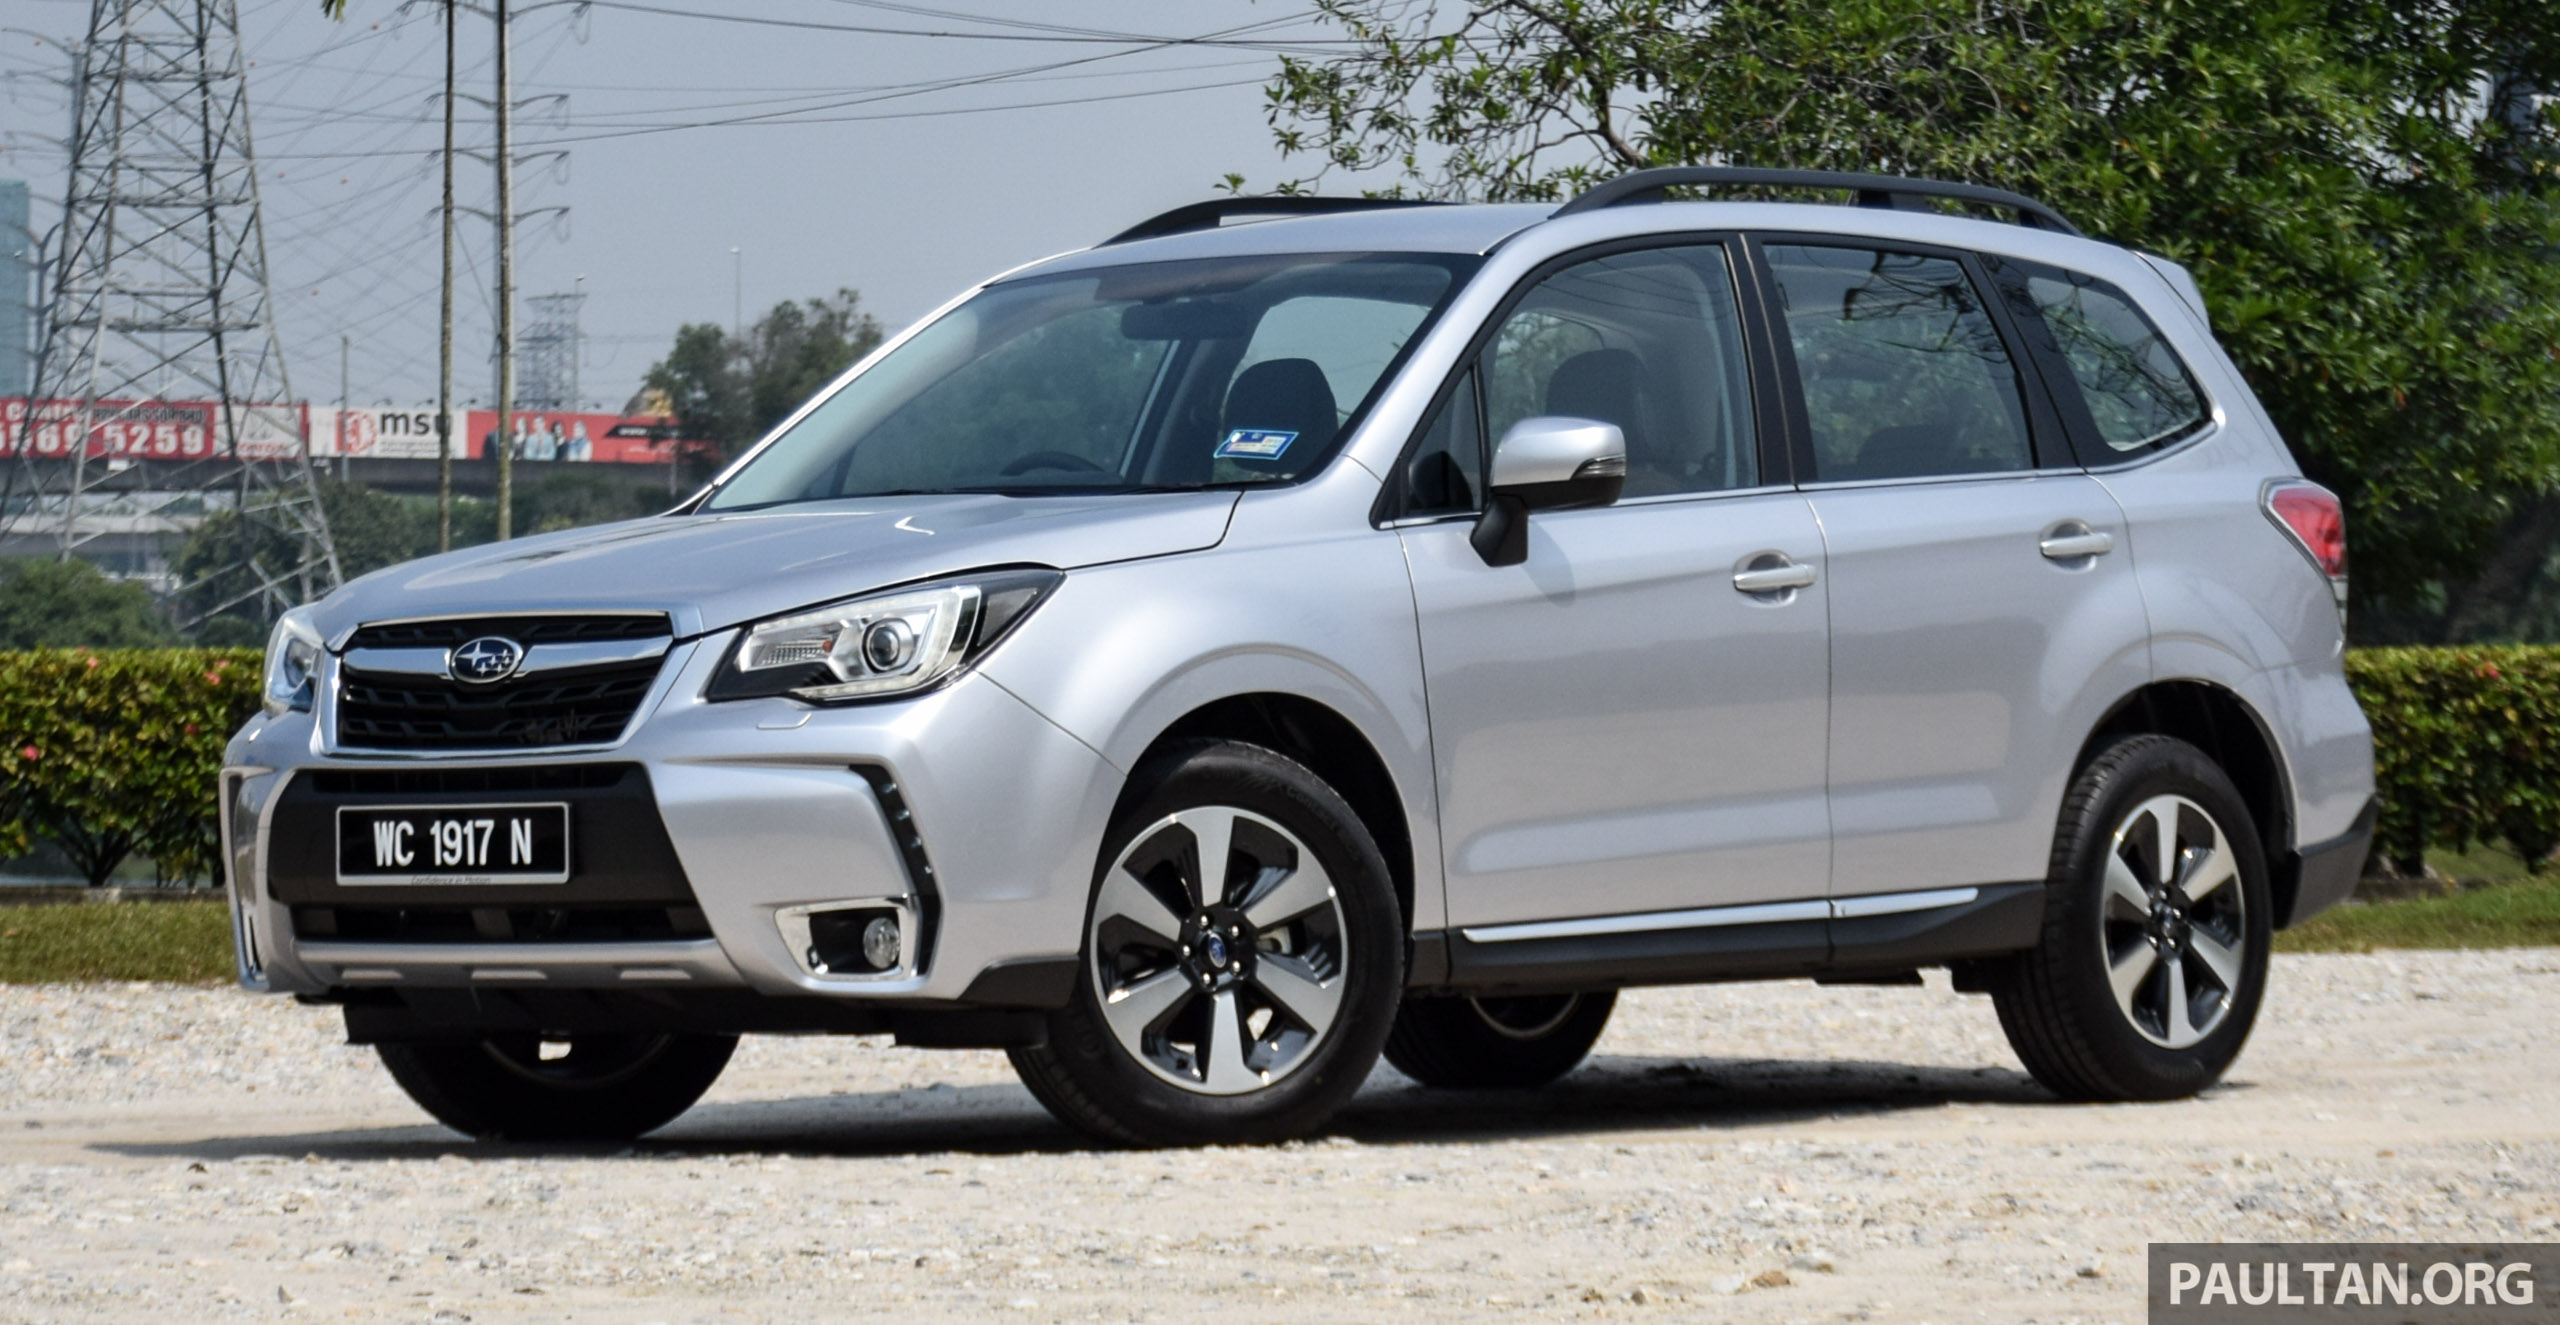 2016 subaru forester facelift launched in malaysia from rm140k two na ckd variants one turbo. Black Bedroom Furniture Sets. Home Design Ideas